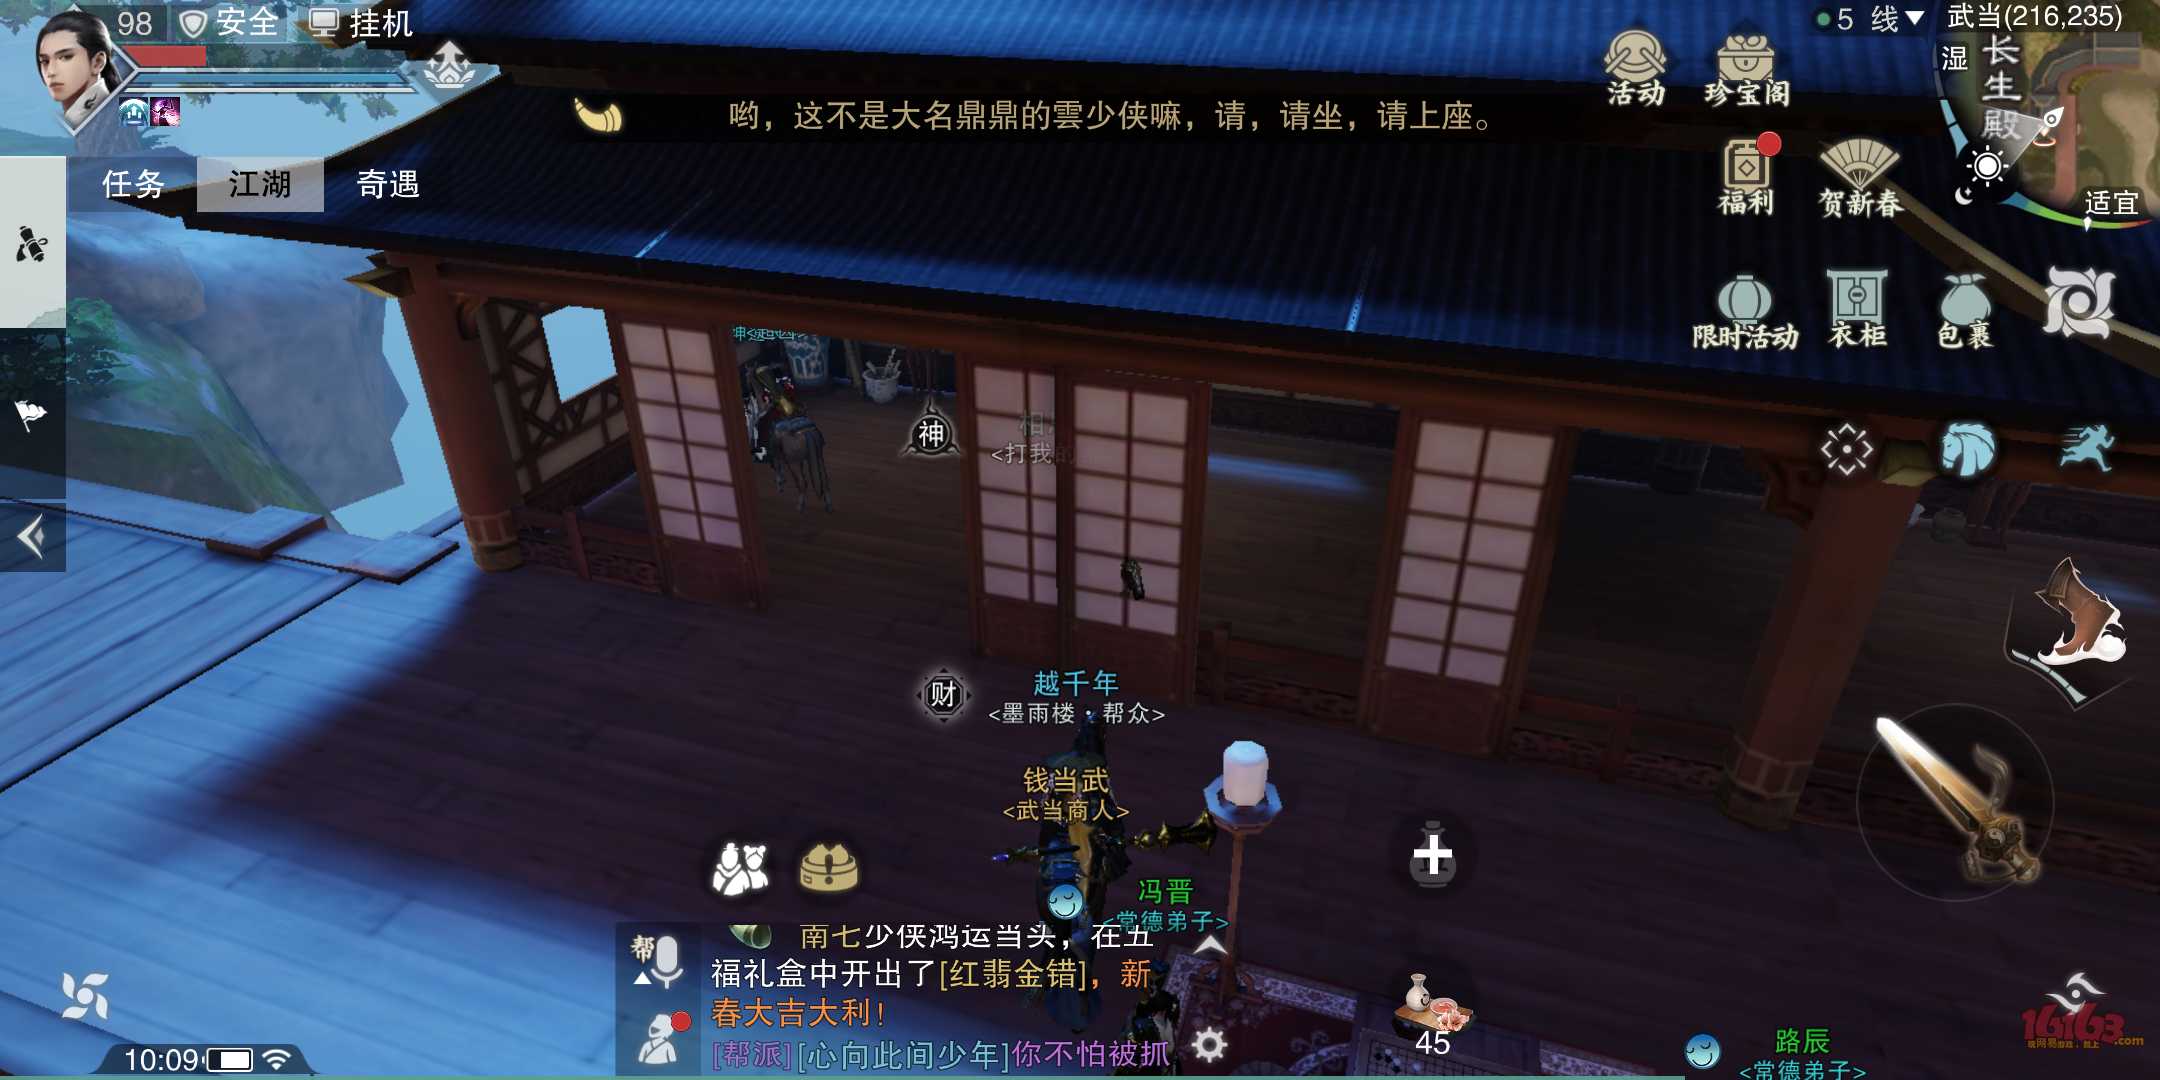 Screenshot_2018-02-15-10-09-11-863_com.netease.wy.png